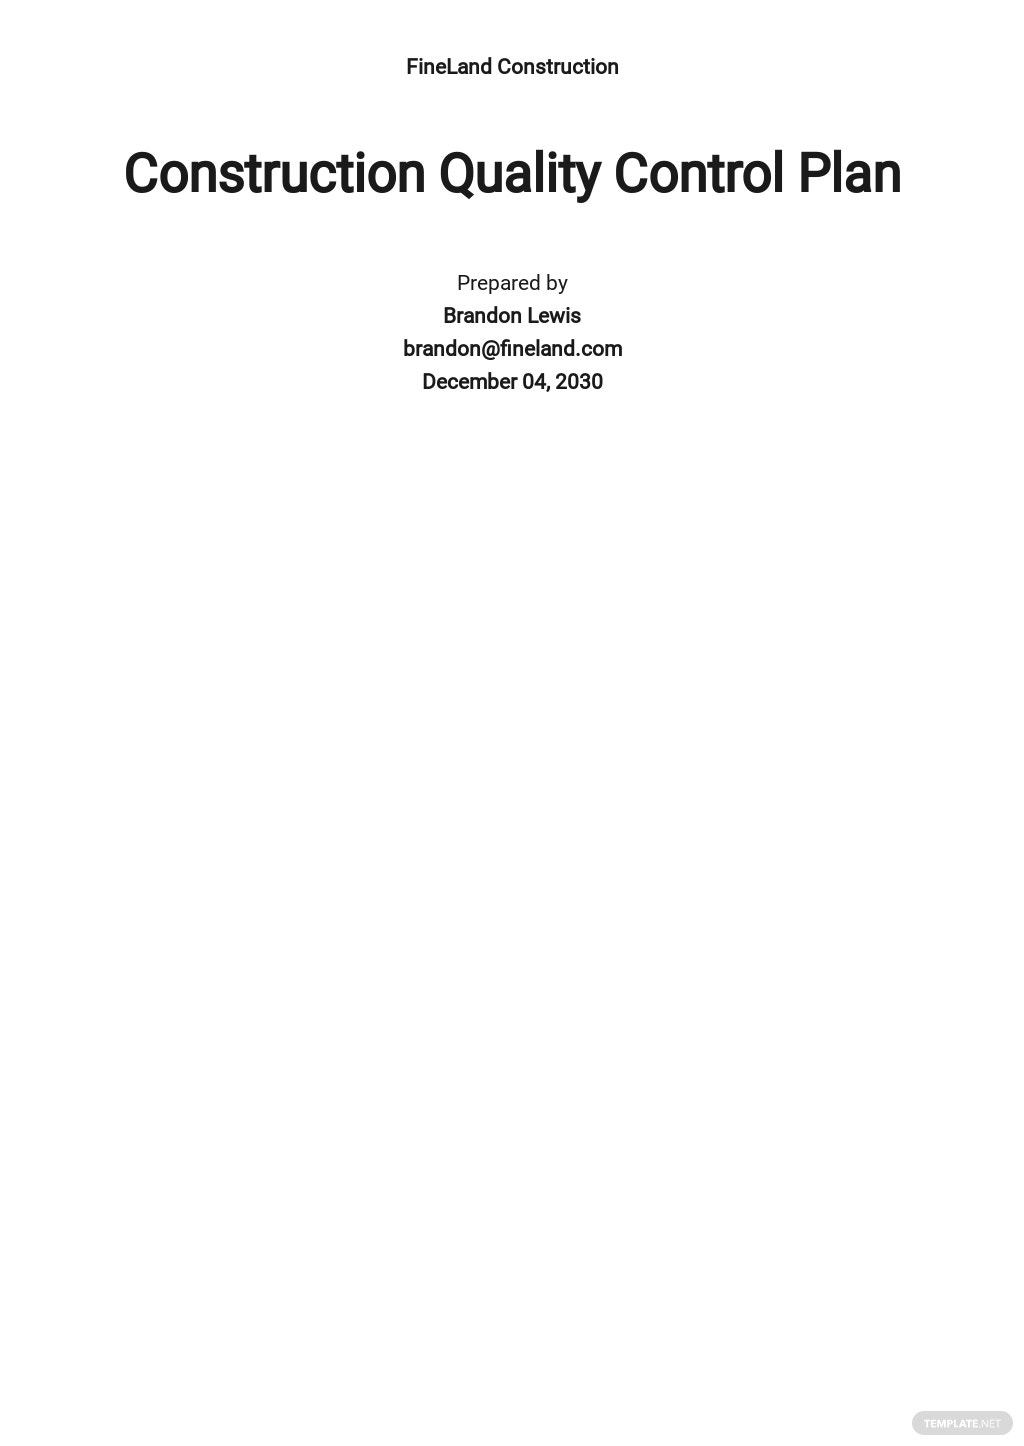 Free Construction Quality Control Plan Template.jpe